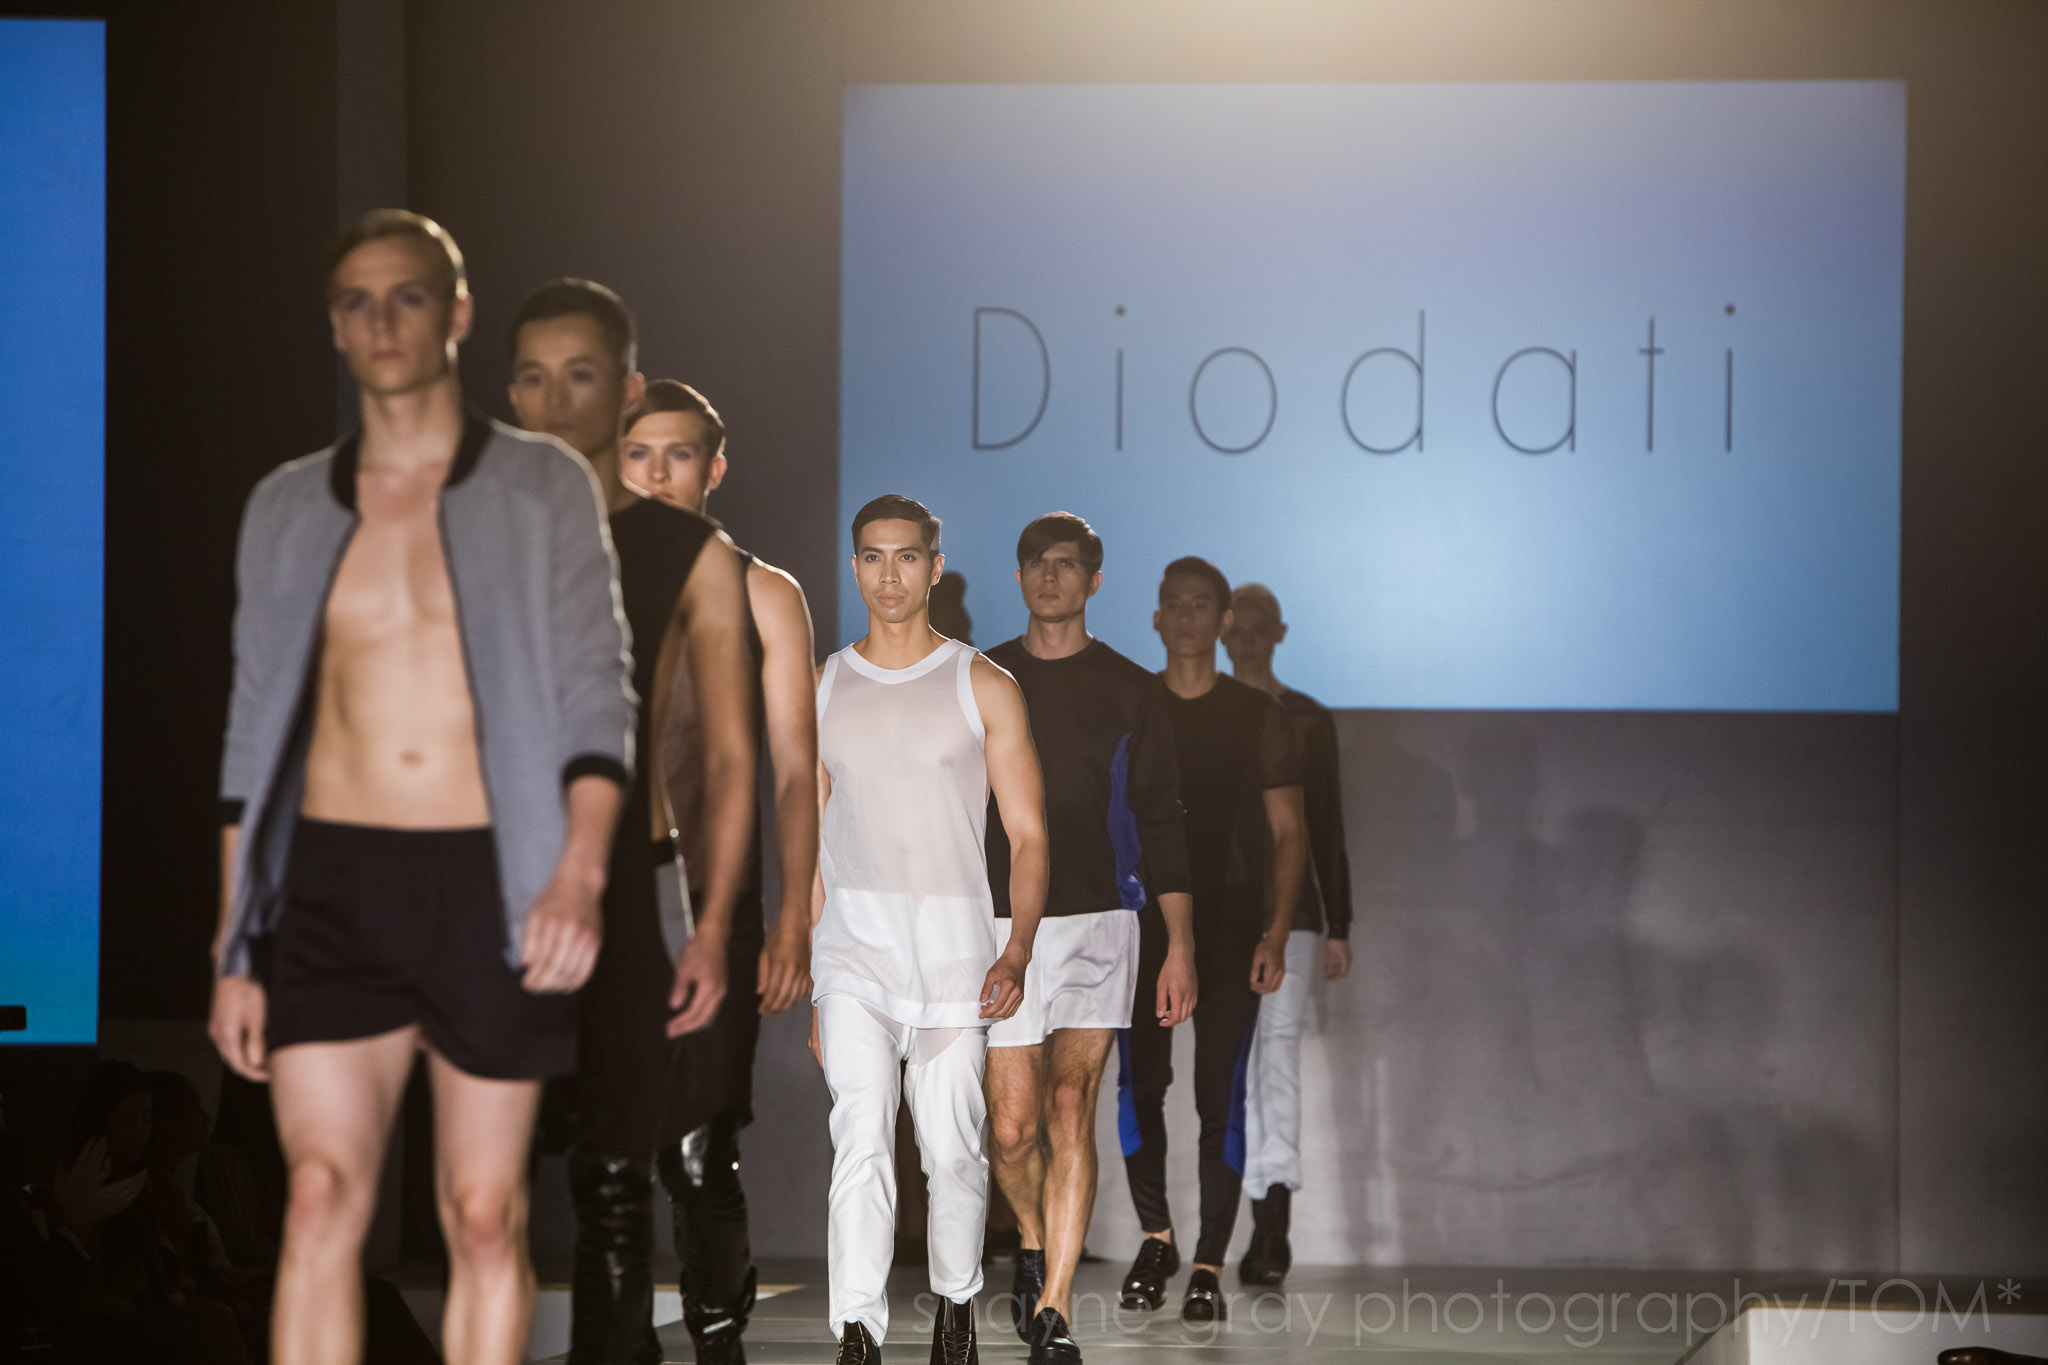 Shayne-Gray-Toronto-men's-fashion_week-TOM-diodati-6193.jpg